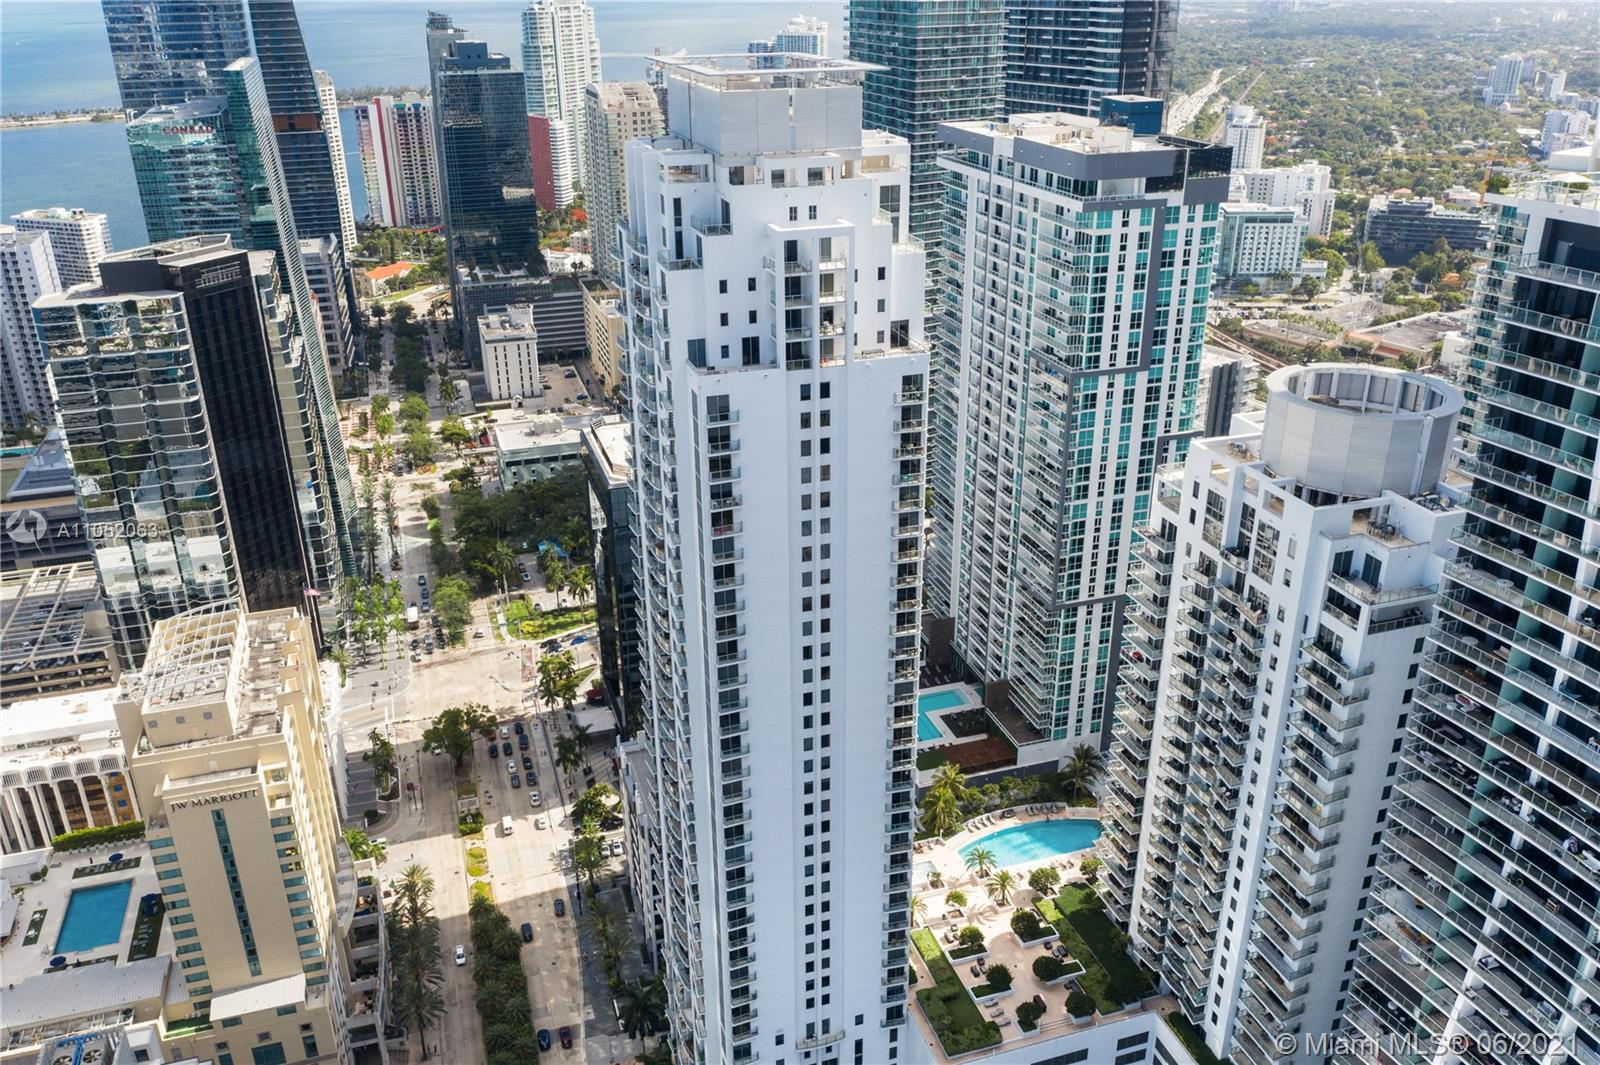 Fantastic loft unit in the exclusive 1060 Brickell Condo, facing vibrant Brickell Avenue,  offering a one bedroom one half bath , Kitchen boasts Stainless Steel Appliances, Italian cabinetry, Quartz countertops . Full-service building with Low HOA's and Spectacular Amenities; Pool-Deck, Heated Hot Tub, Sauna, State-of the-Art Fitness Center, Club Room, Billiards Room, Virtual Golf as well as Table Tennis. 24 Hour Patrolled Security, Valet Parking, Font Desk Concierge. In the heart of Mary Brickell Village and Brickell City Center. Property is tenant occupy.